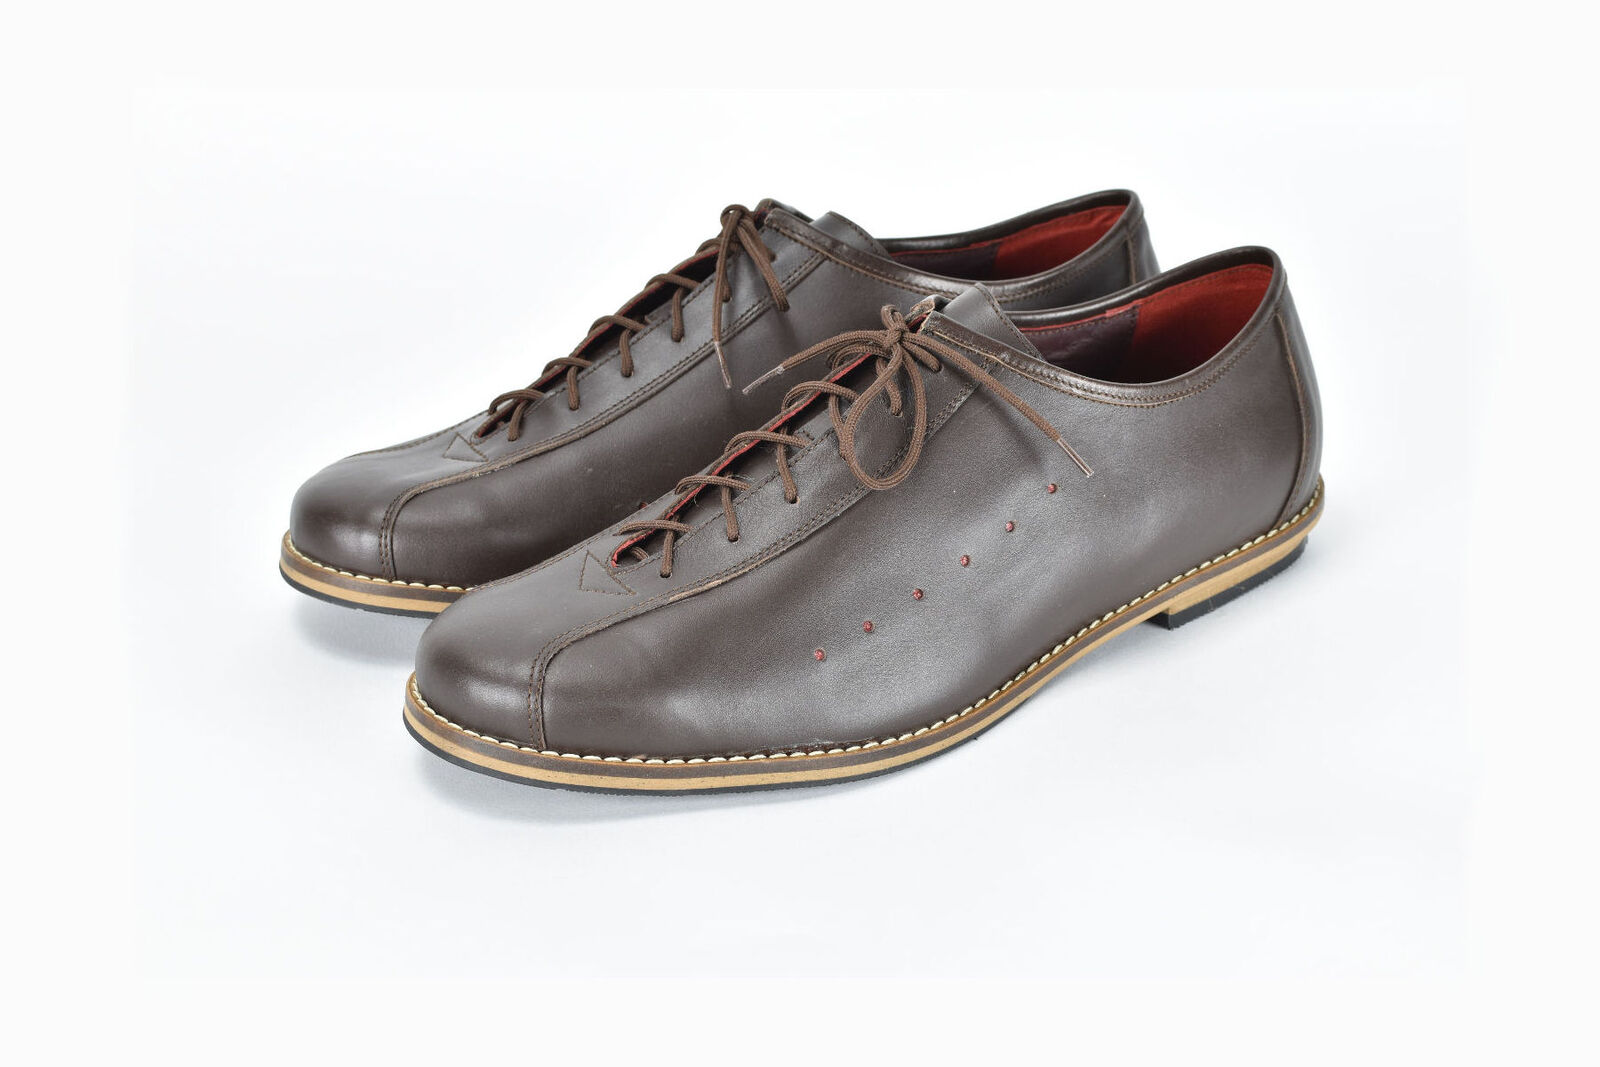 VV Classics vintage styled leather cycling shoes in brown - eroica